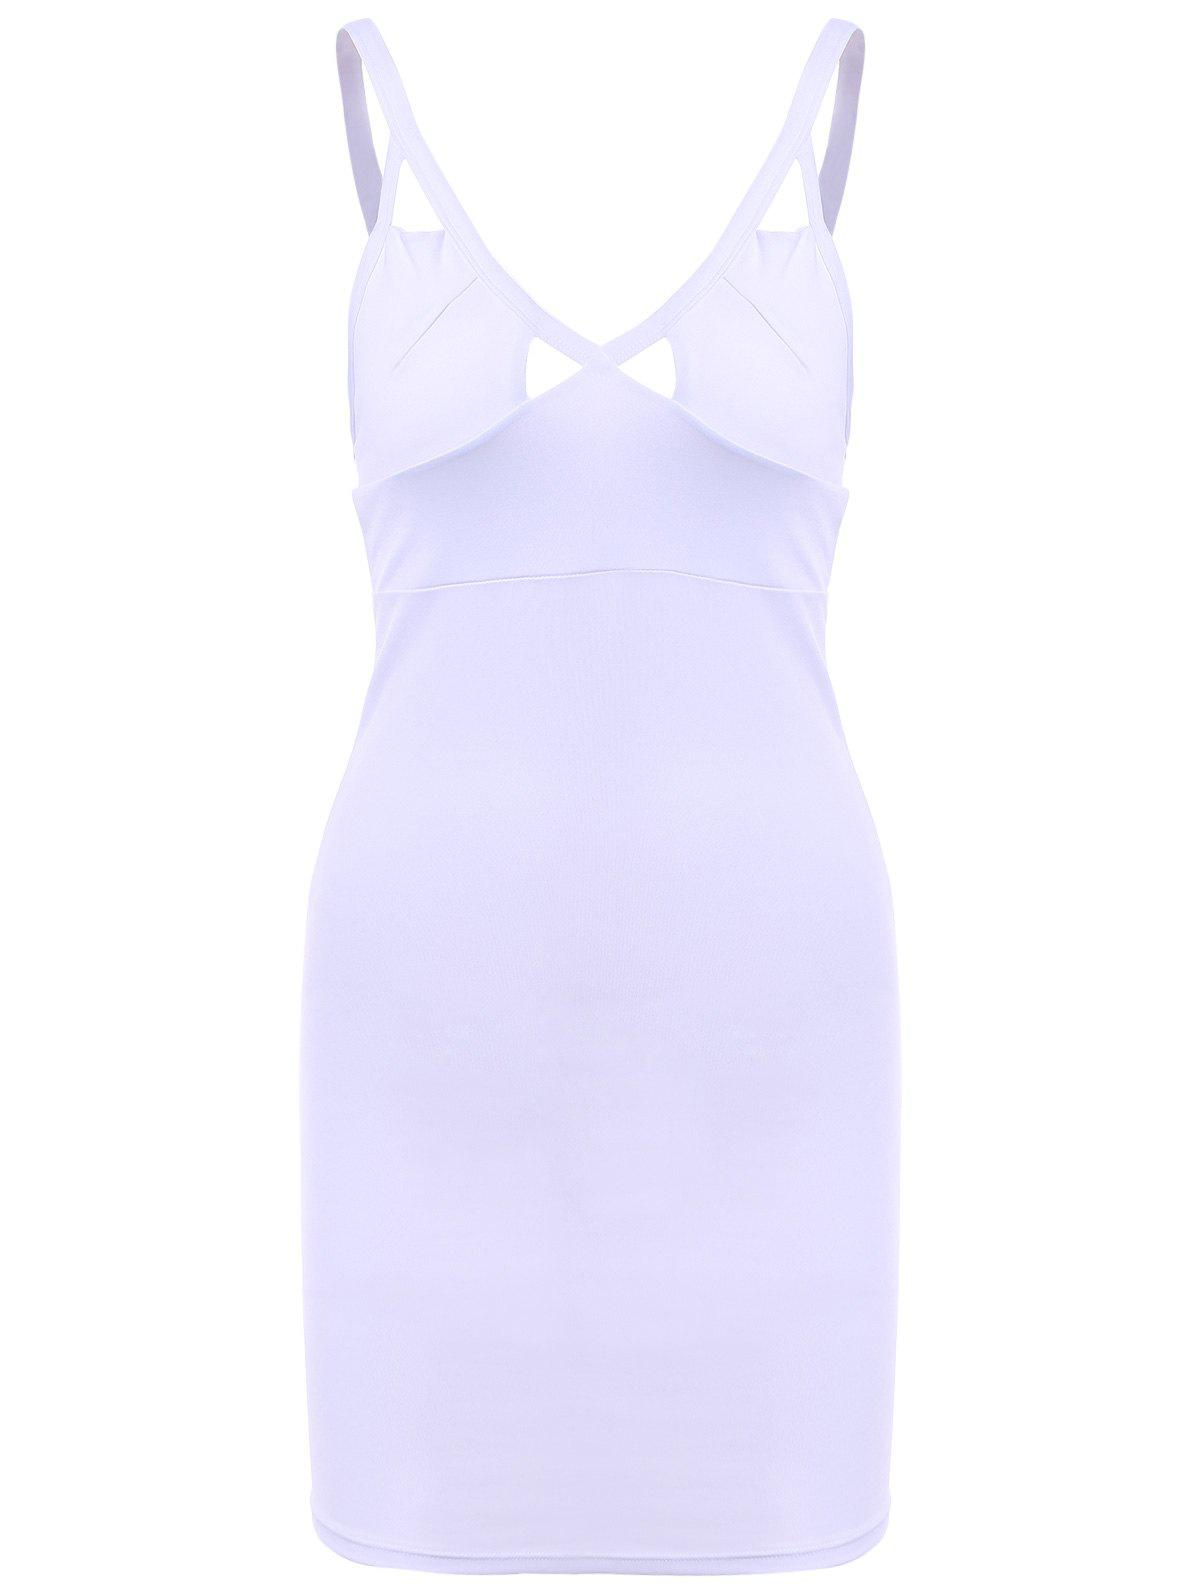 Sexy Women's Plunging Neck Sleeveless Solid Color Cut Out Bodycon Dress - WHITE ONE SIZE(FIT SIZE XS TO M)